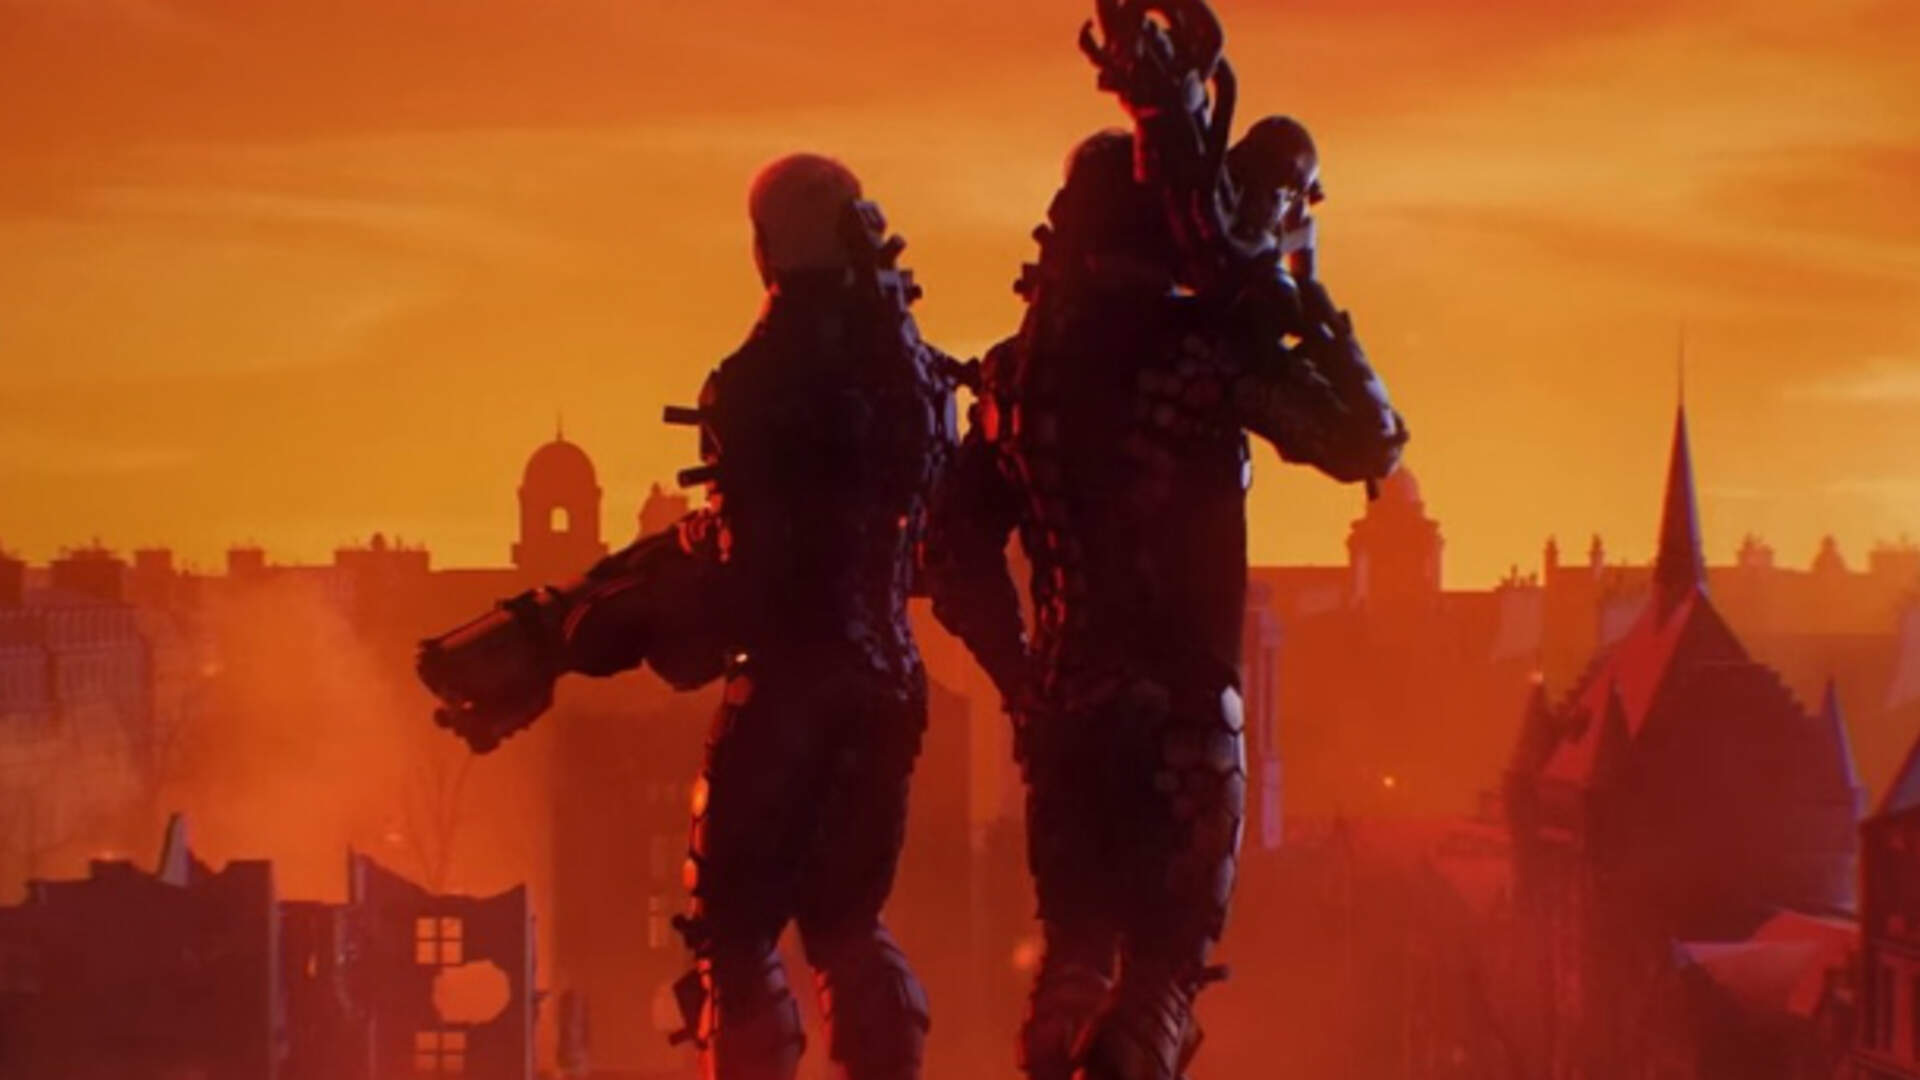 Wolfenstein Youngblood Release Date, E3 2019 Gameplay, Co-op - Everything We Know